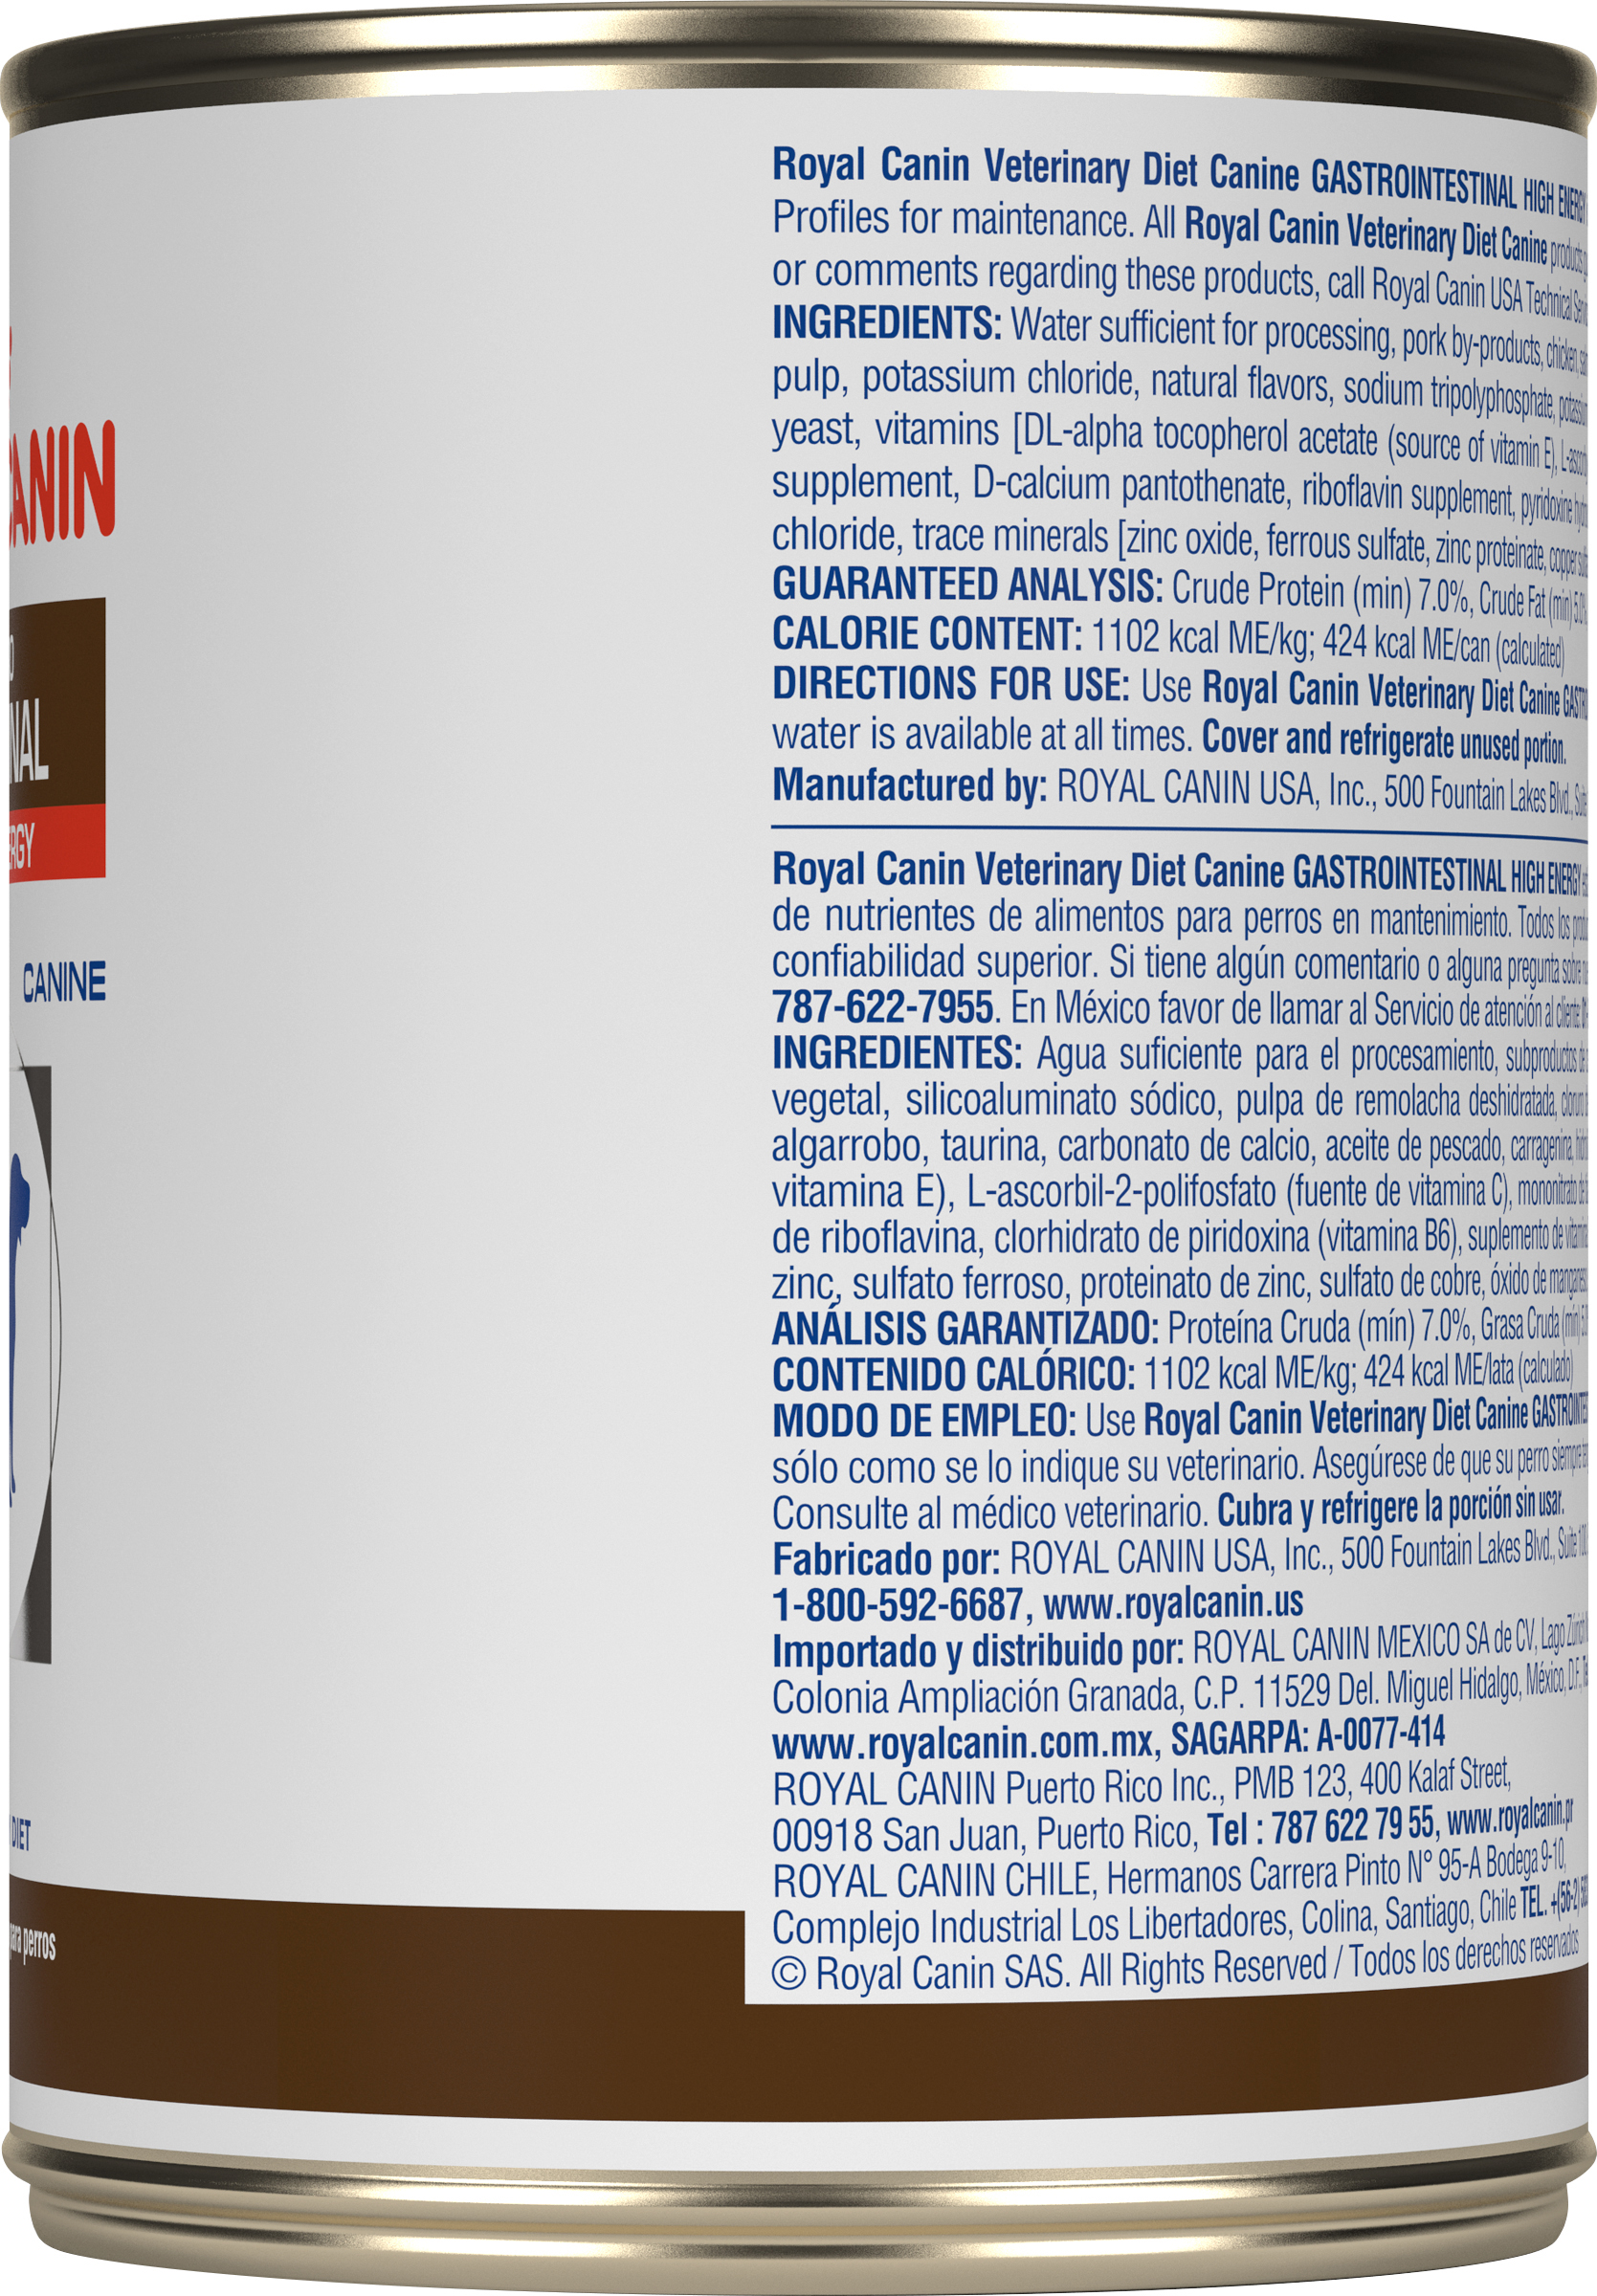 Royal Canin Veterinary Diet Canine Gastrointestinal High Energy Canned Dog Food